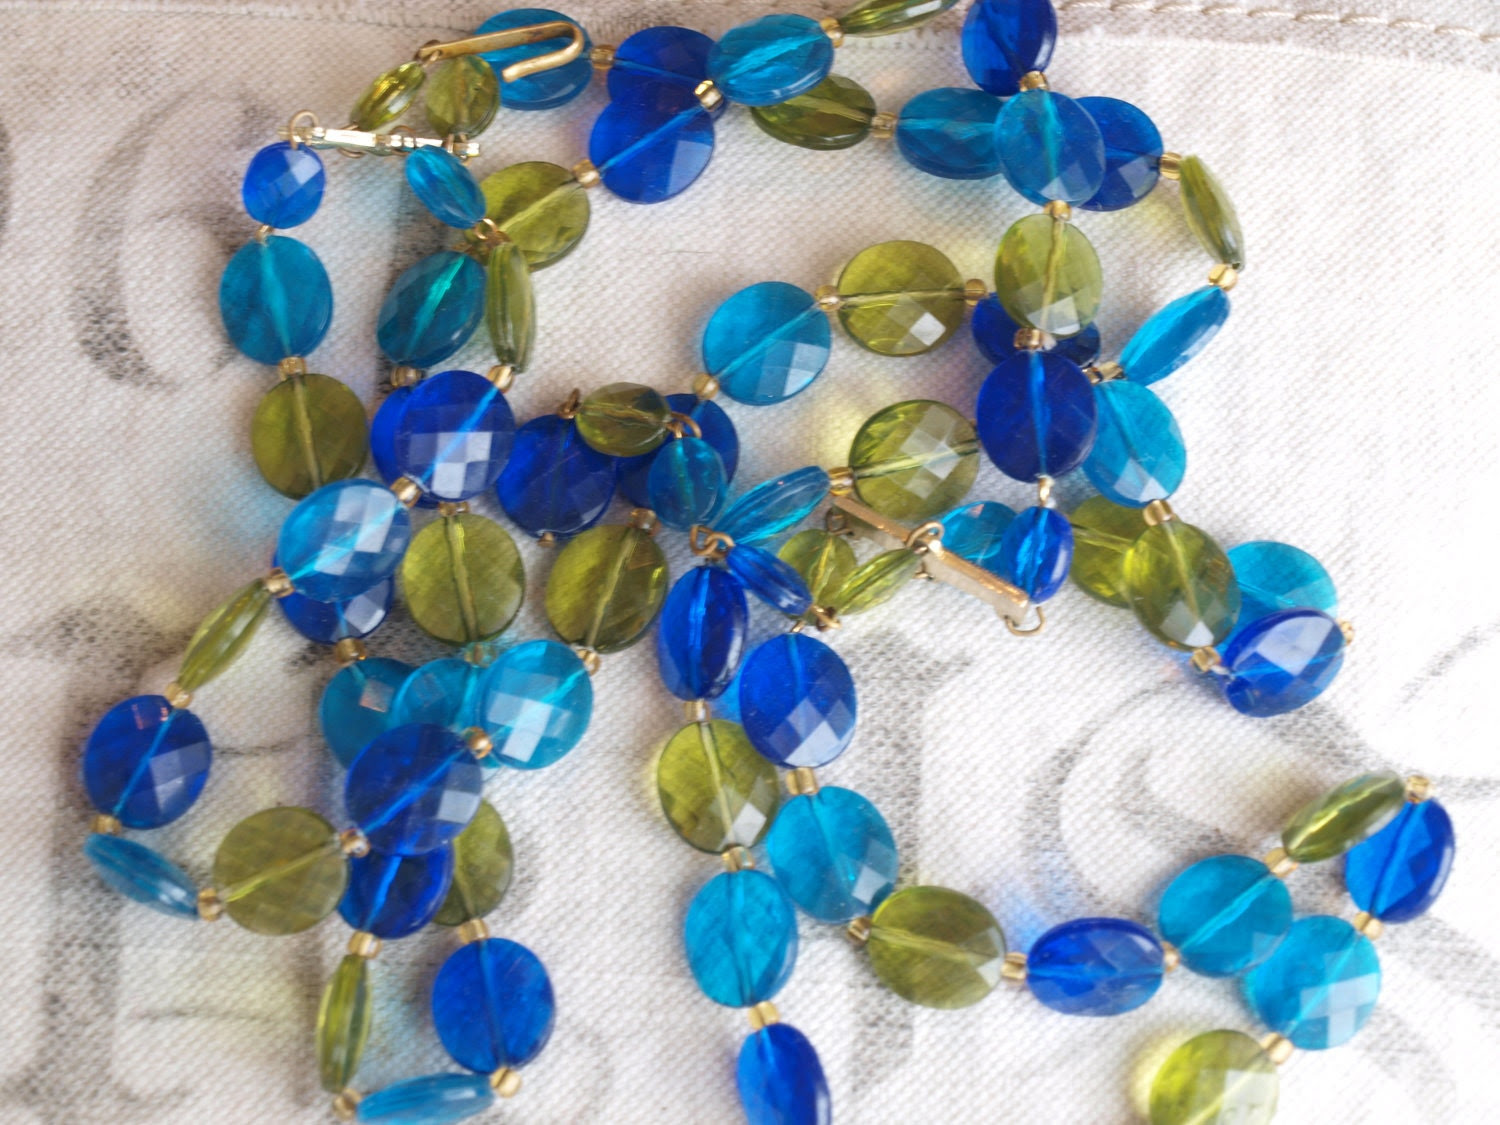 VINTAGE made in West Germany necklace 1950s or 1960s...new price